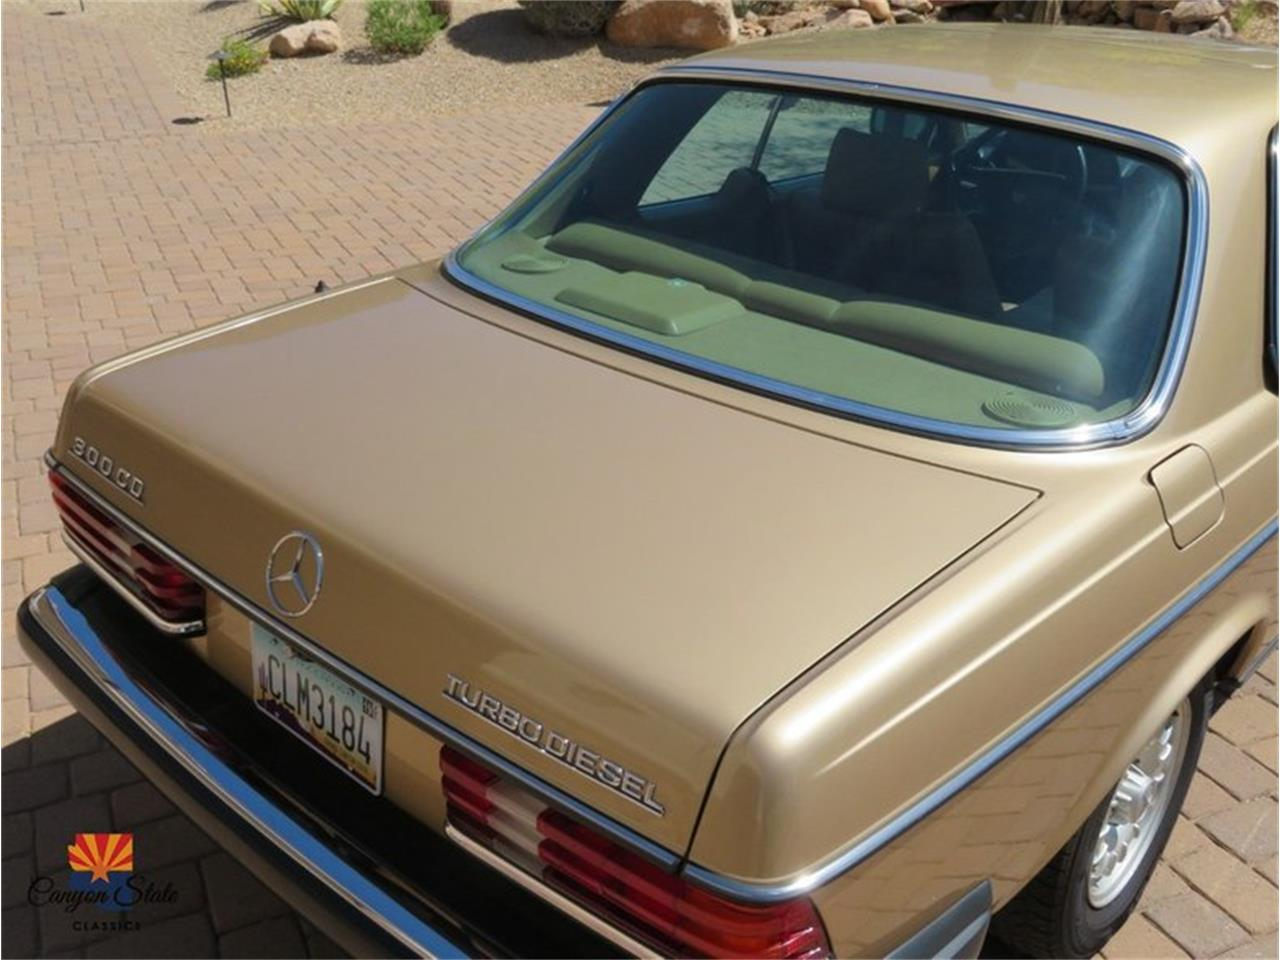 1985 Mercedes-Benz 300 for sale in Tempe, AZ – photo 24